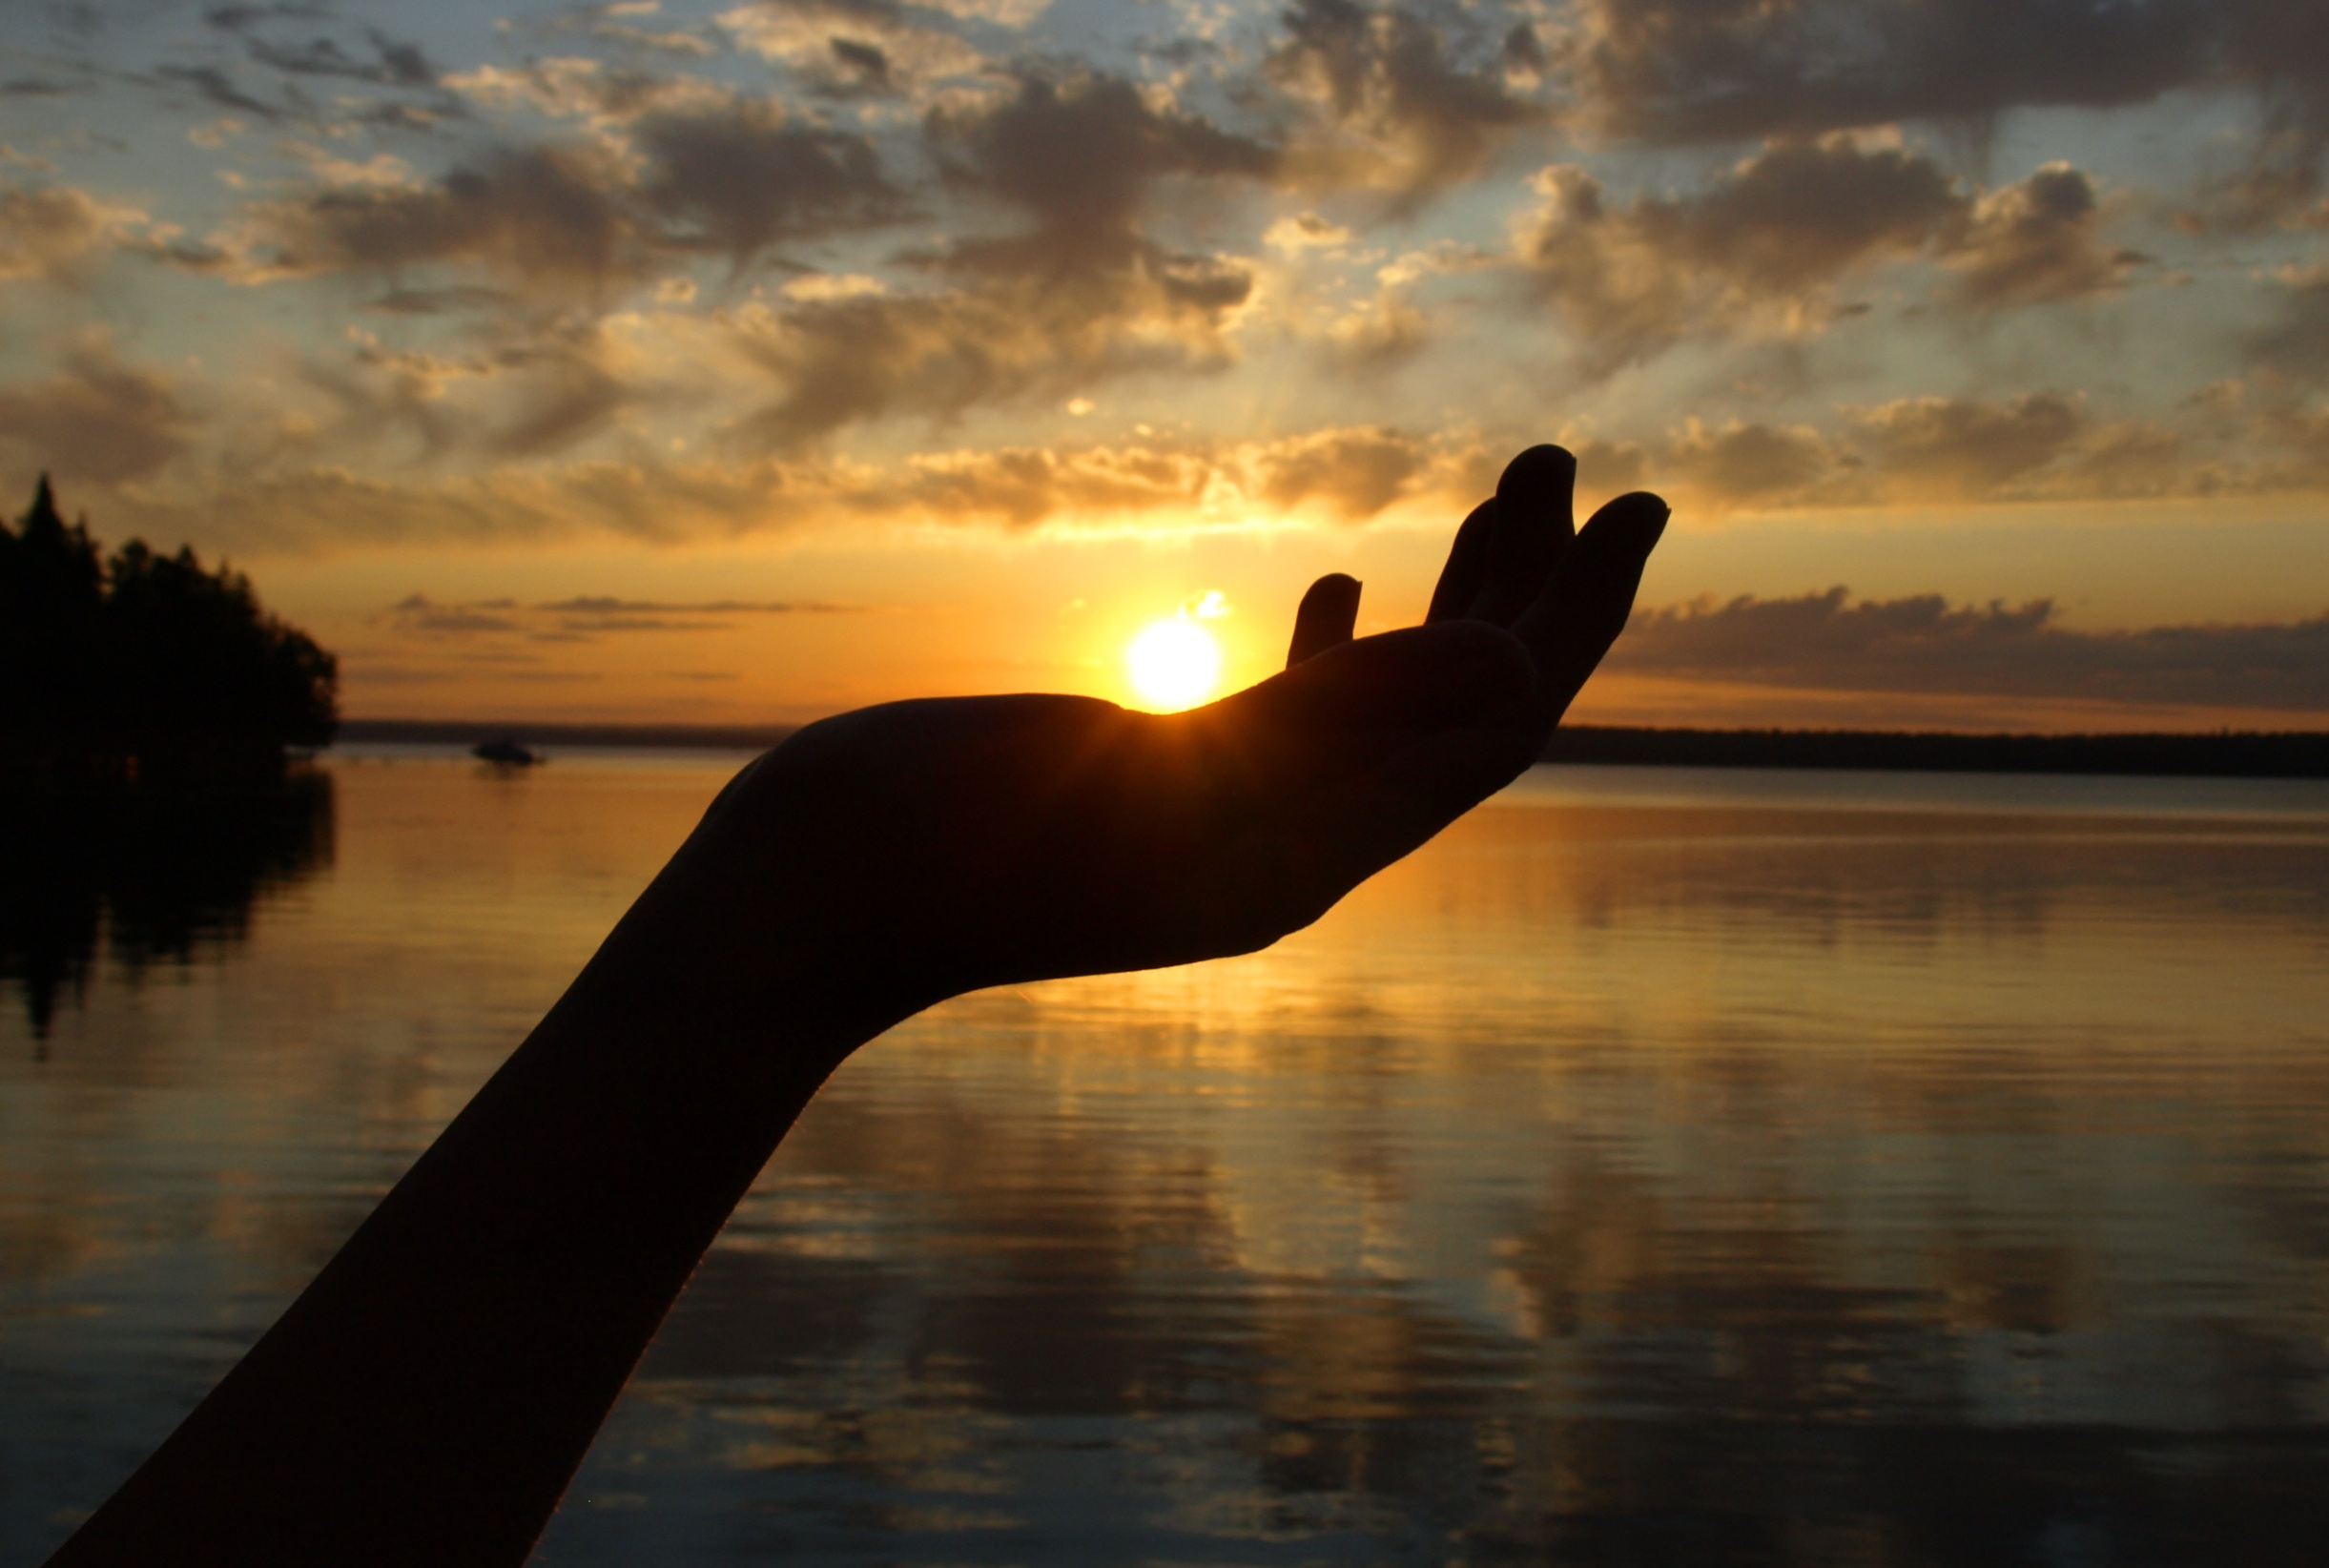 Sunset-in-Hand-over-Lake-173907560_2442x1645.jpeg